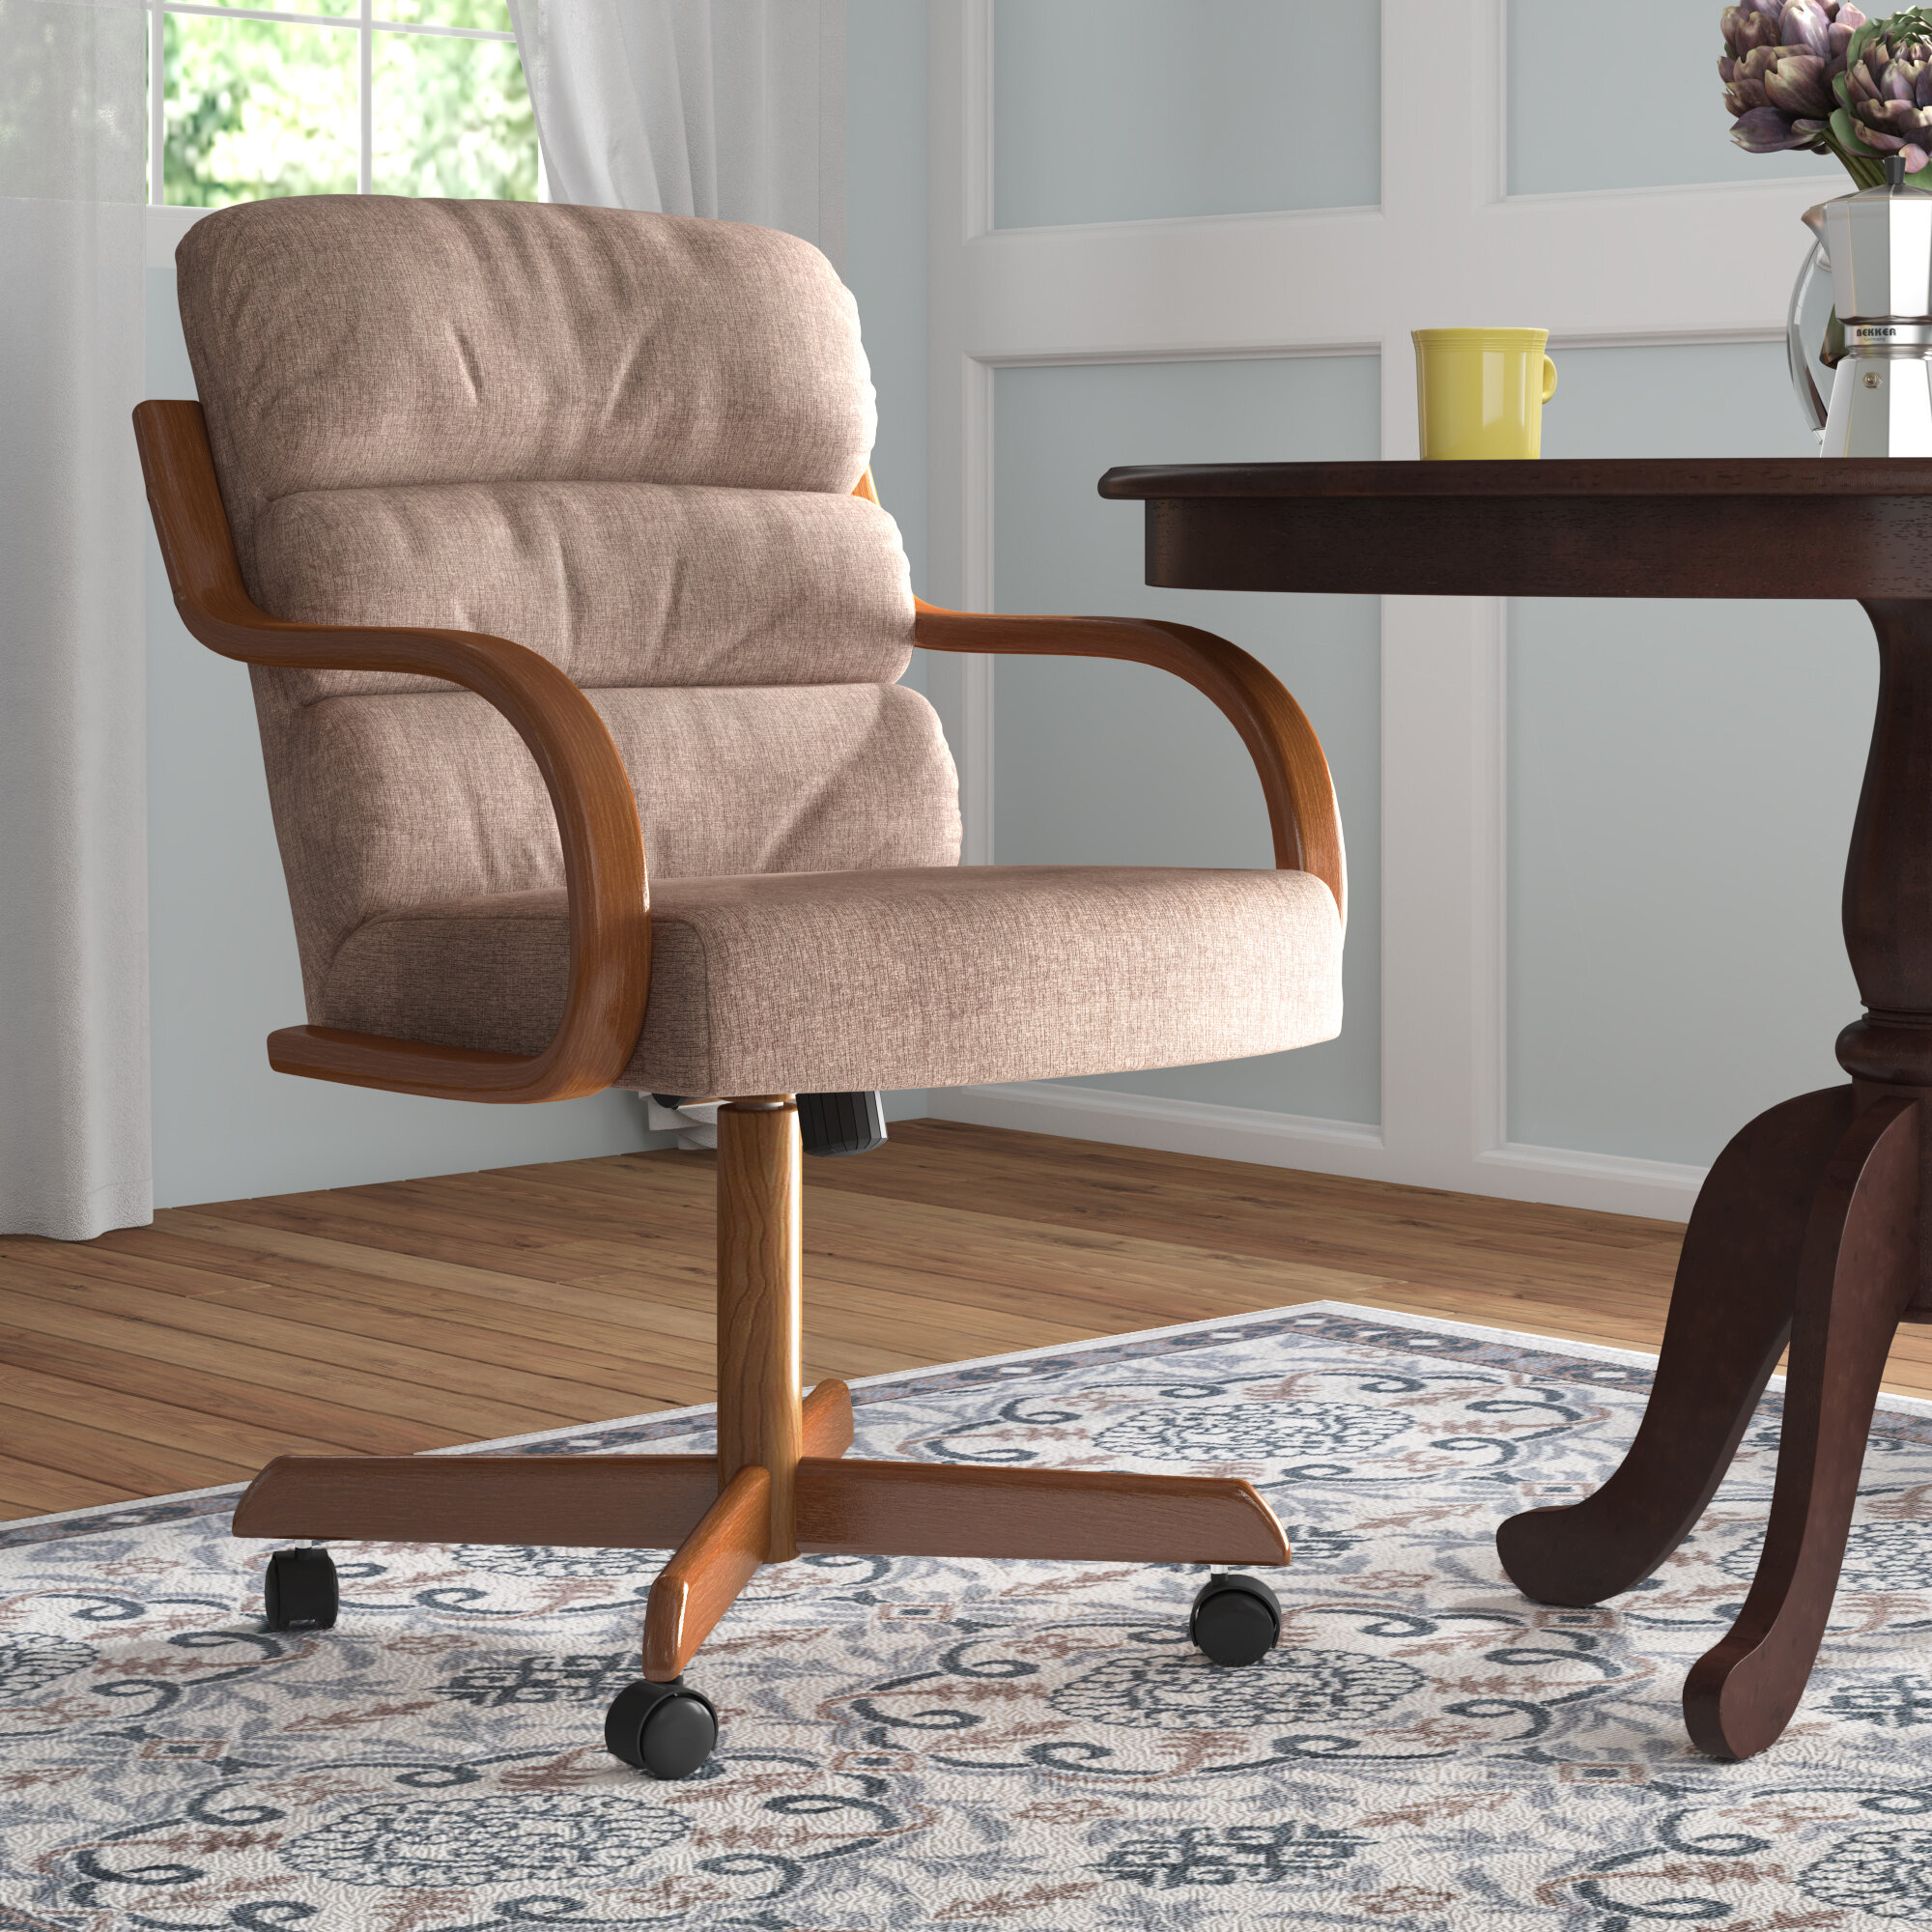 Kitchen & Dining Chairs with Casters   Wayfair